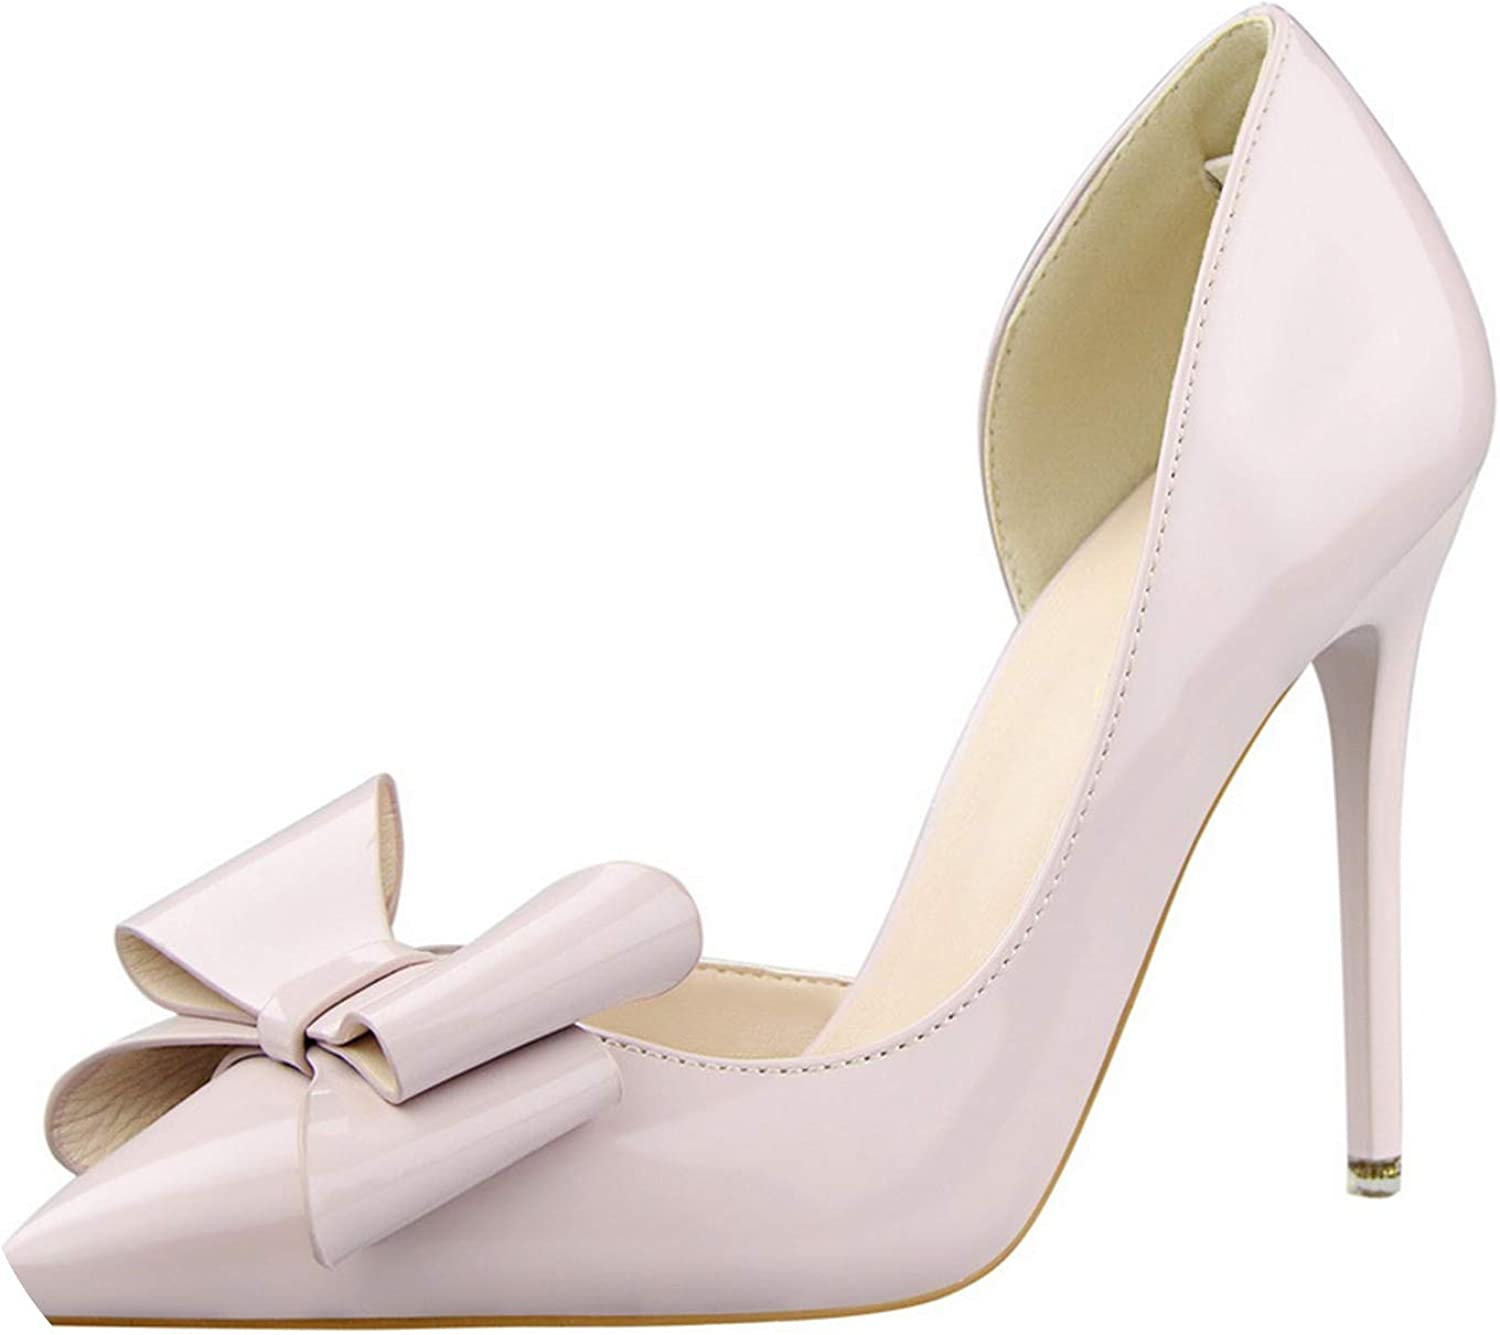 GO-SAMSARA HEELS Bowknot High Heel shoes Side Hollow Pointed Women Pumps Pointed Toe 10.5Cm Thin Dress shoes